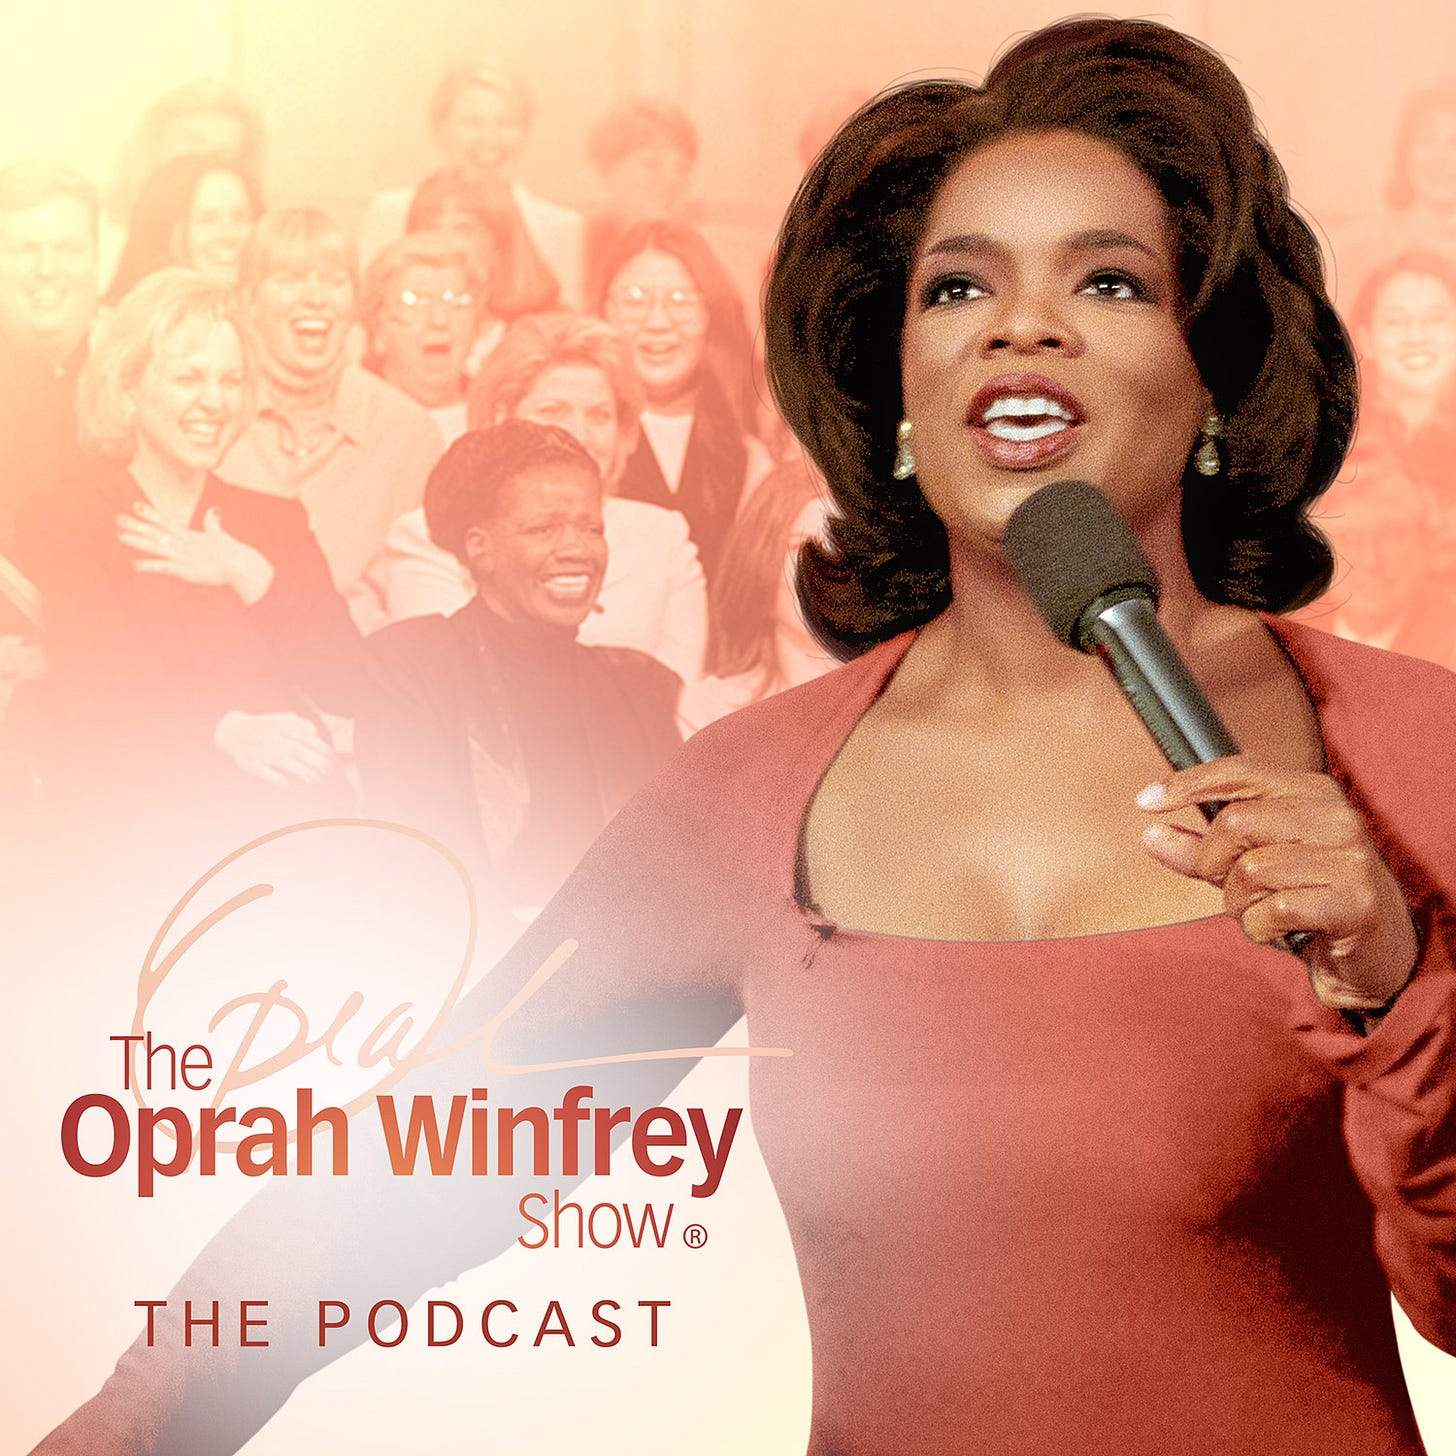 The Oprah Winfrey Show The Podcast